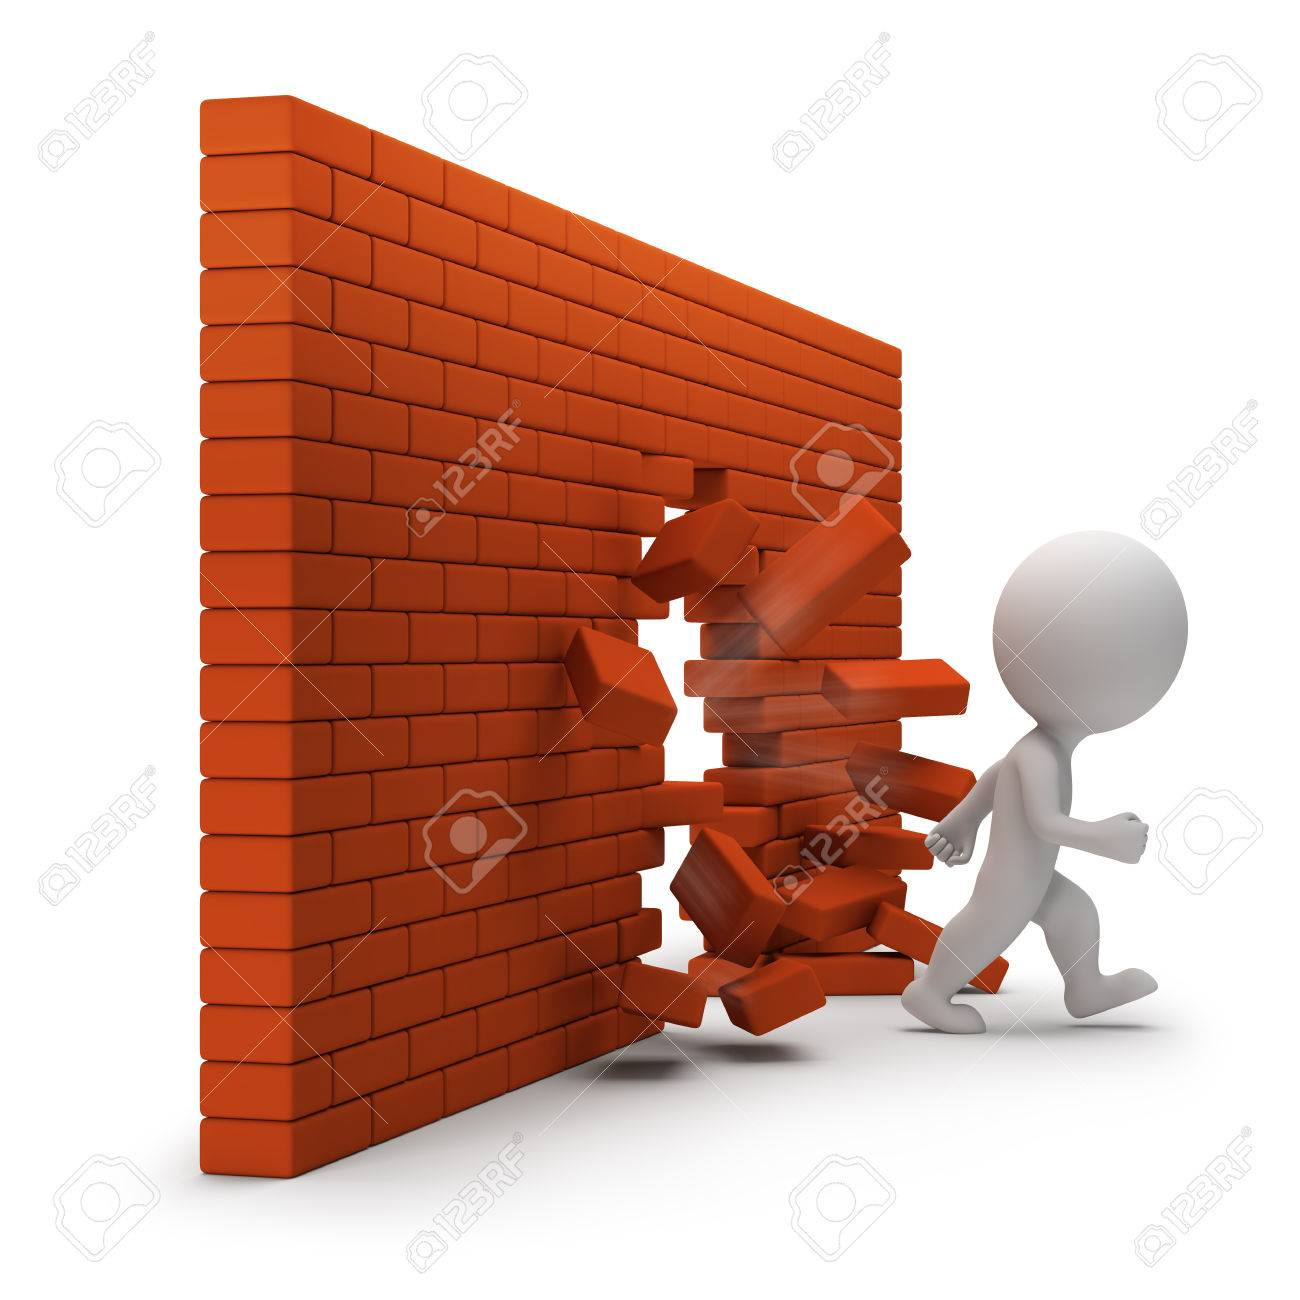 3d small person passing through a brick wall. 3d image. White background. Stock Photo - 32009856